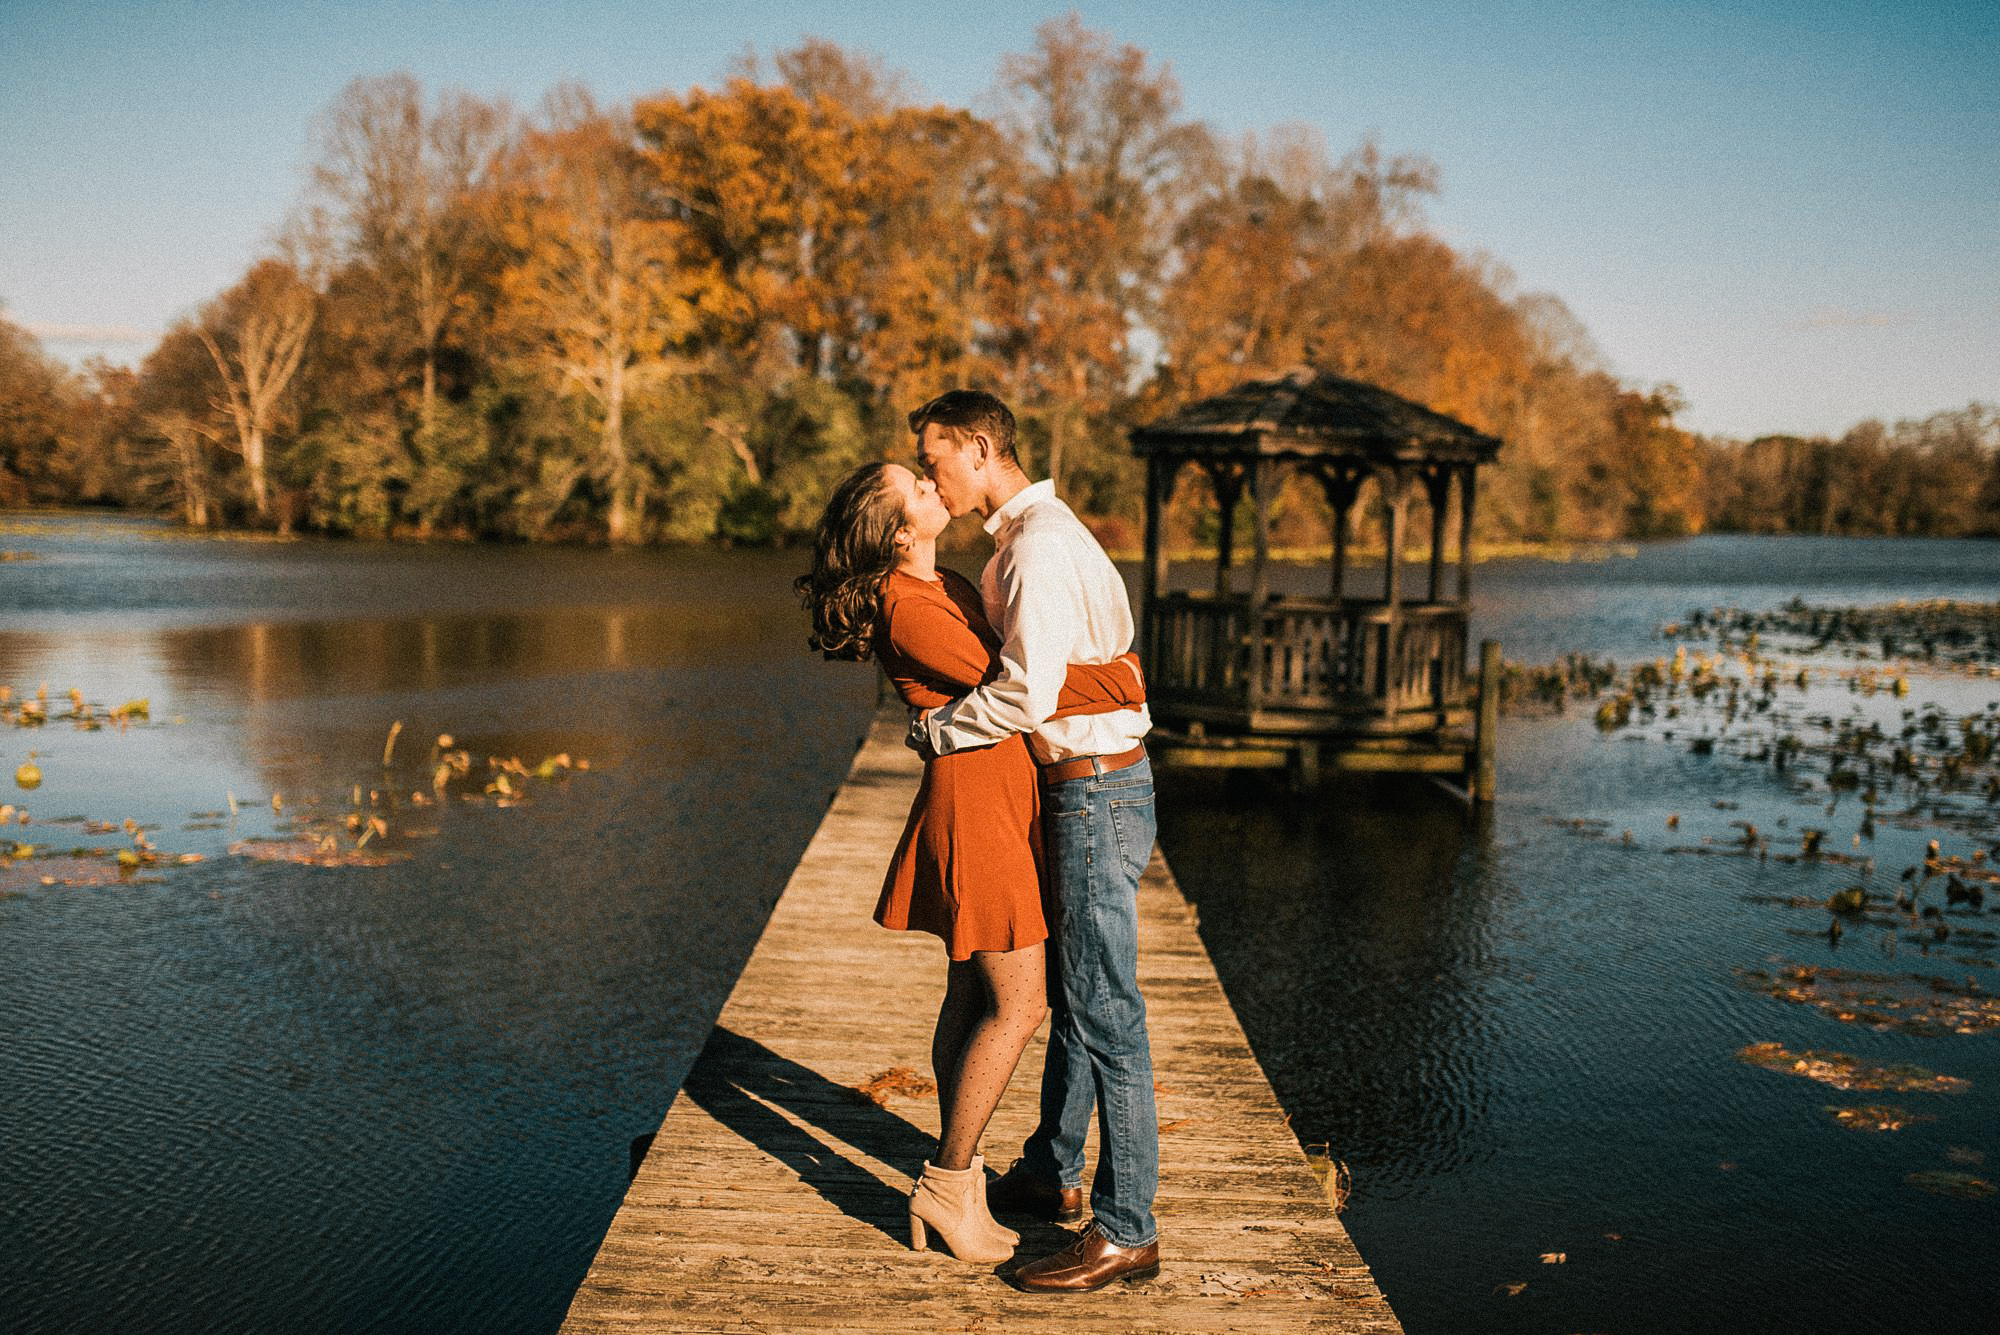 engagement-photography-88-love-stories_0003.jpg